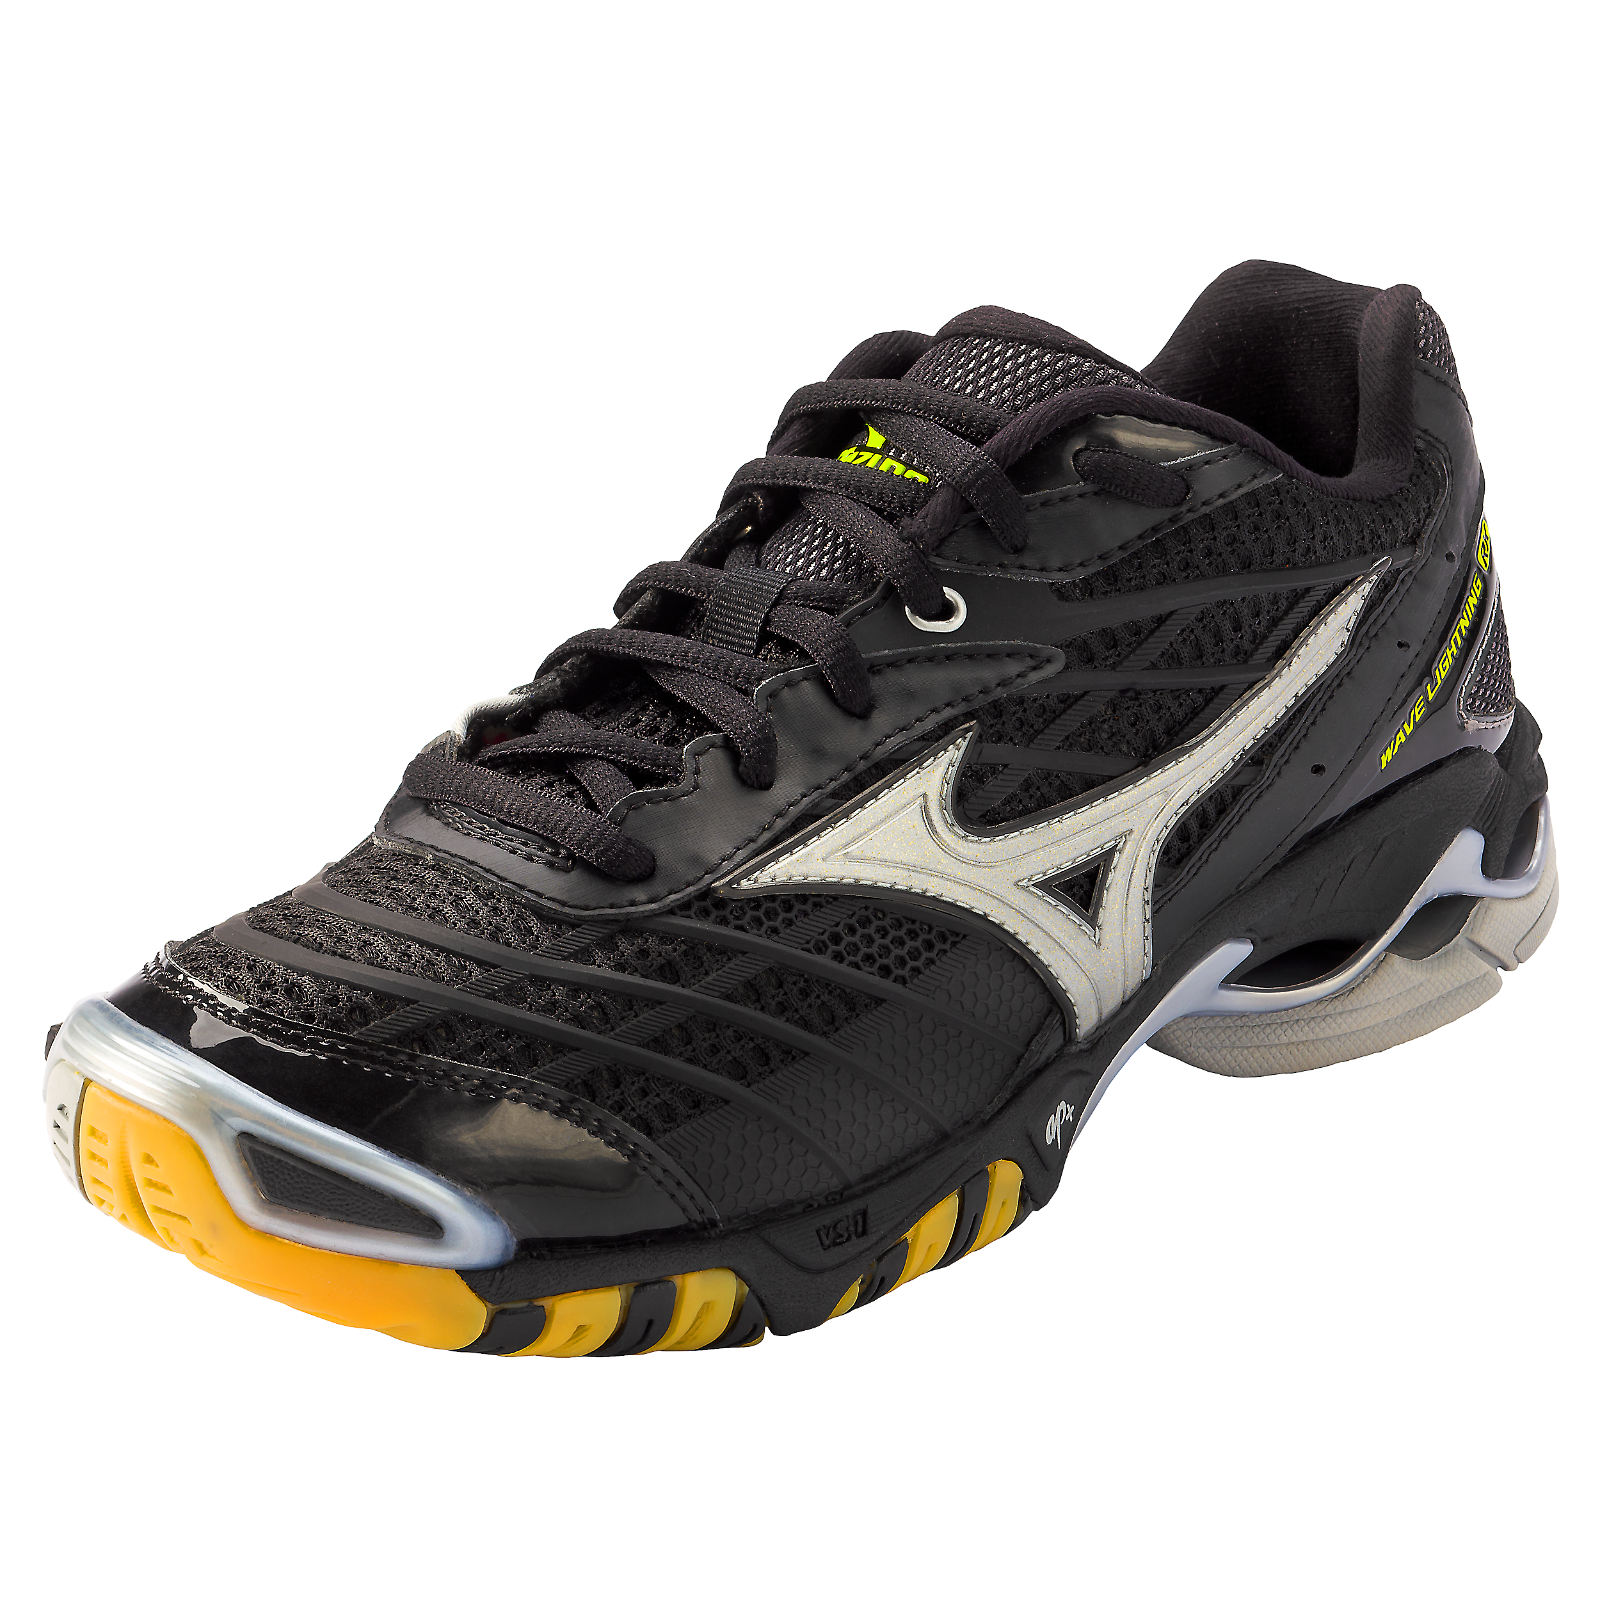 Mizuno Team Sports - Mizuno Men's Wave Lightning RX Volleyball Shoes